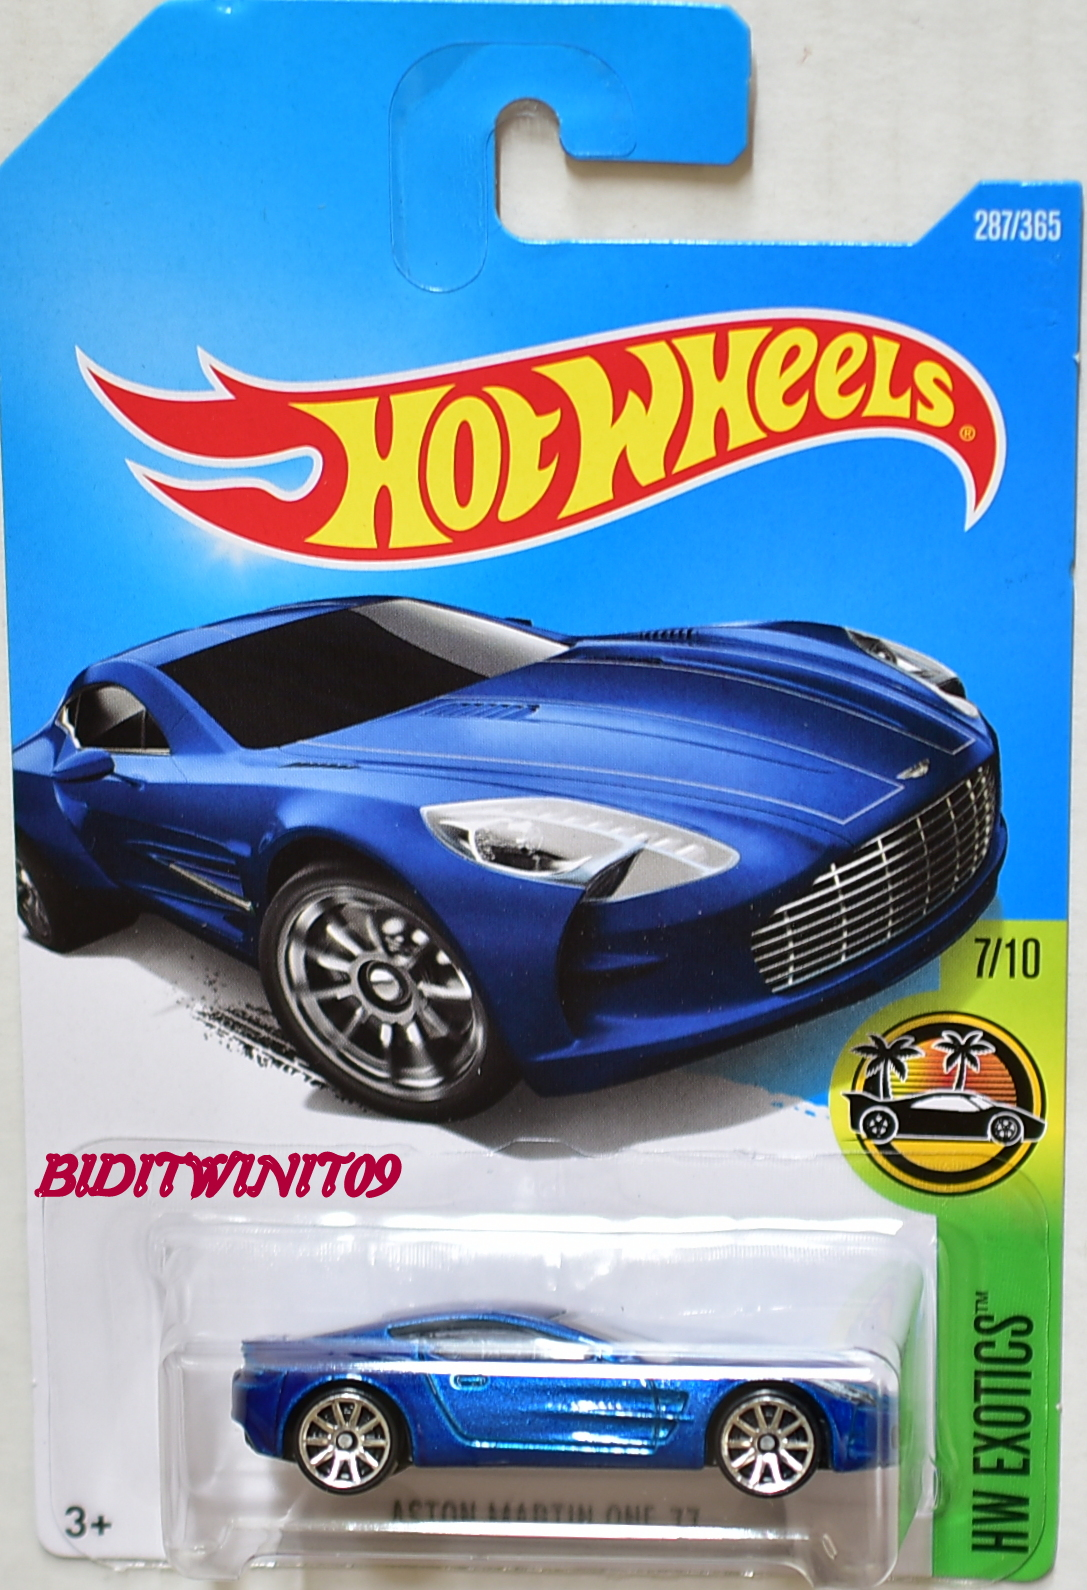 HOT WHEELS 2017 HW EXOTICS ASTON MARTIN ONE-77 BLUE